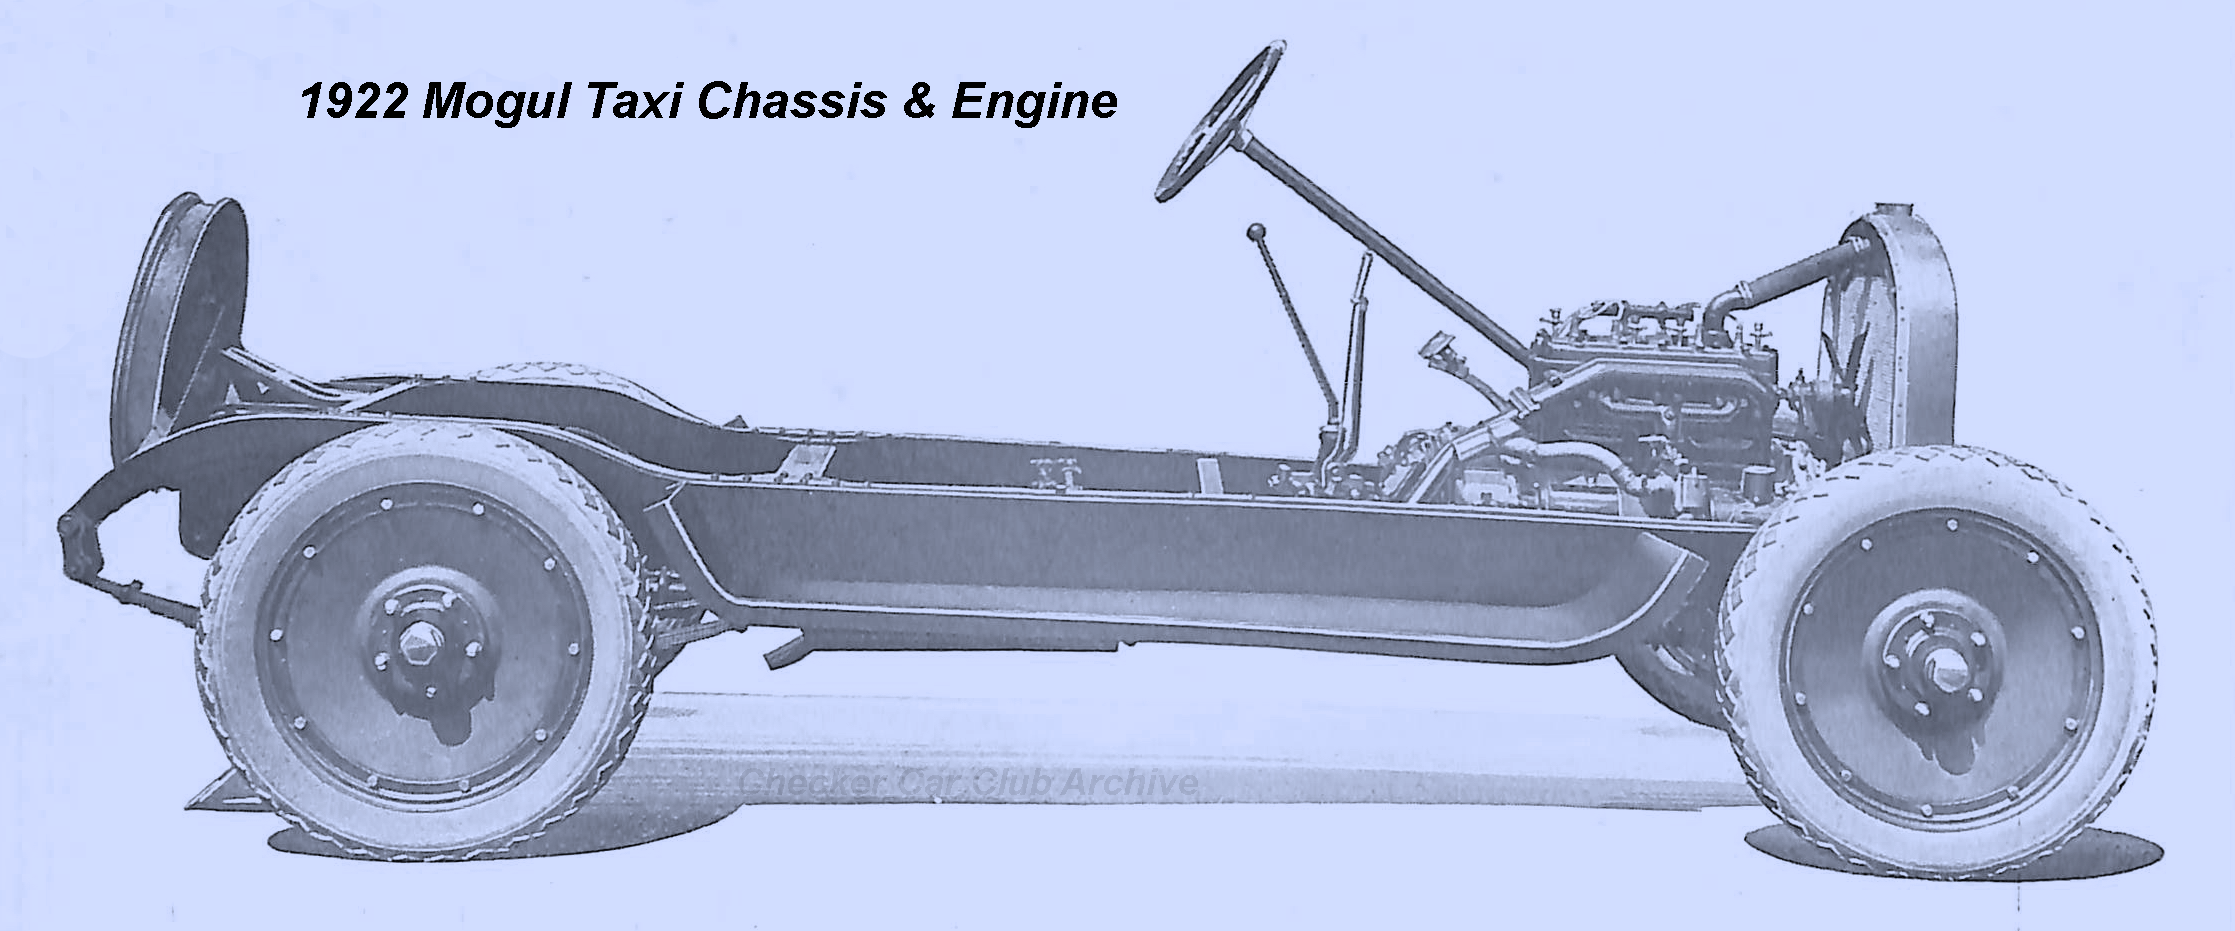 1922 Mogul Taxi Chassis & Engine